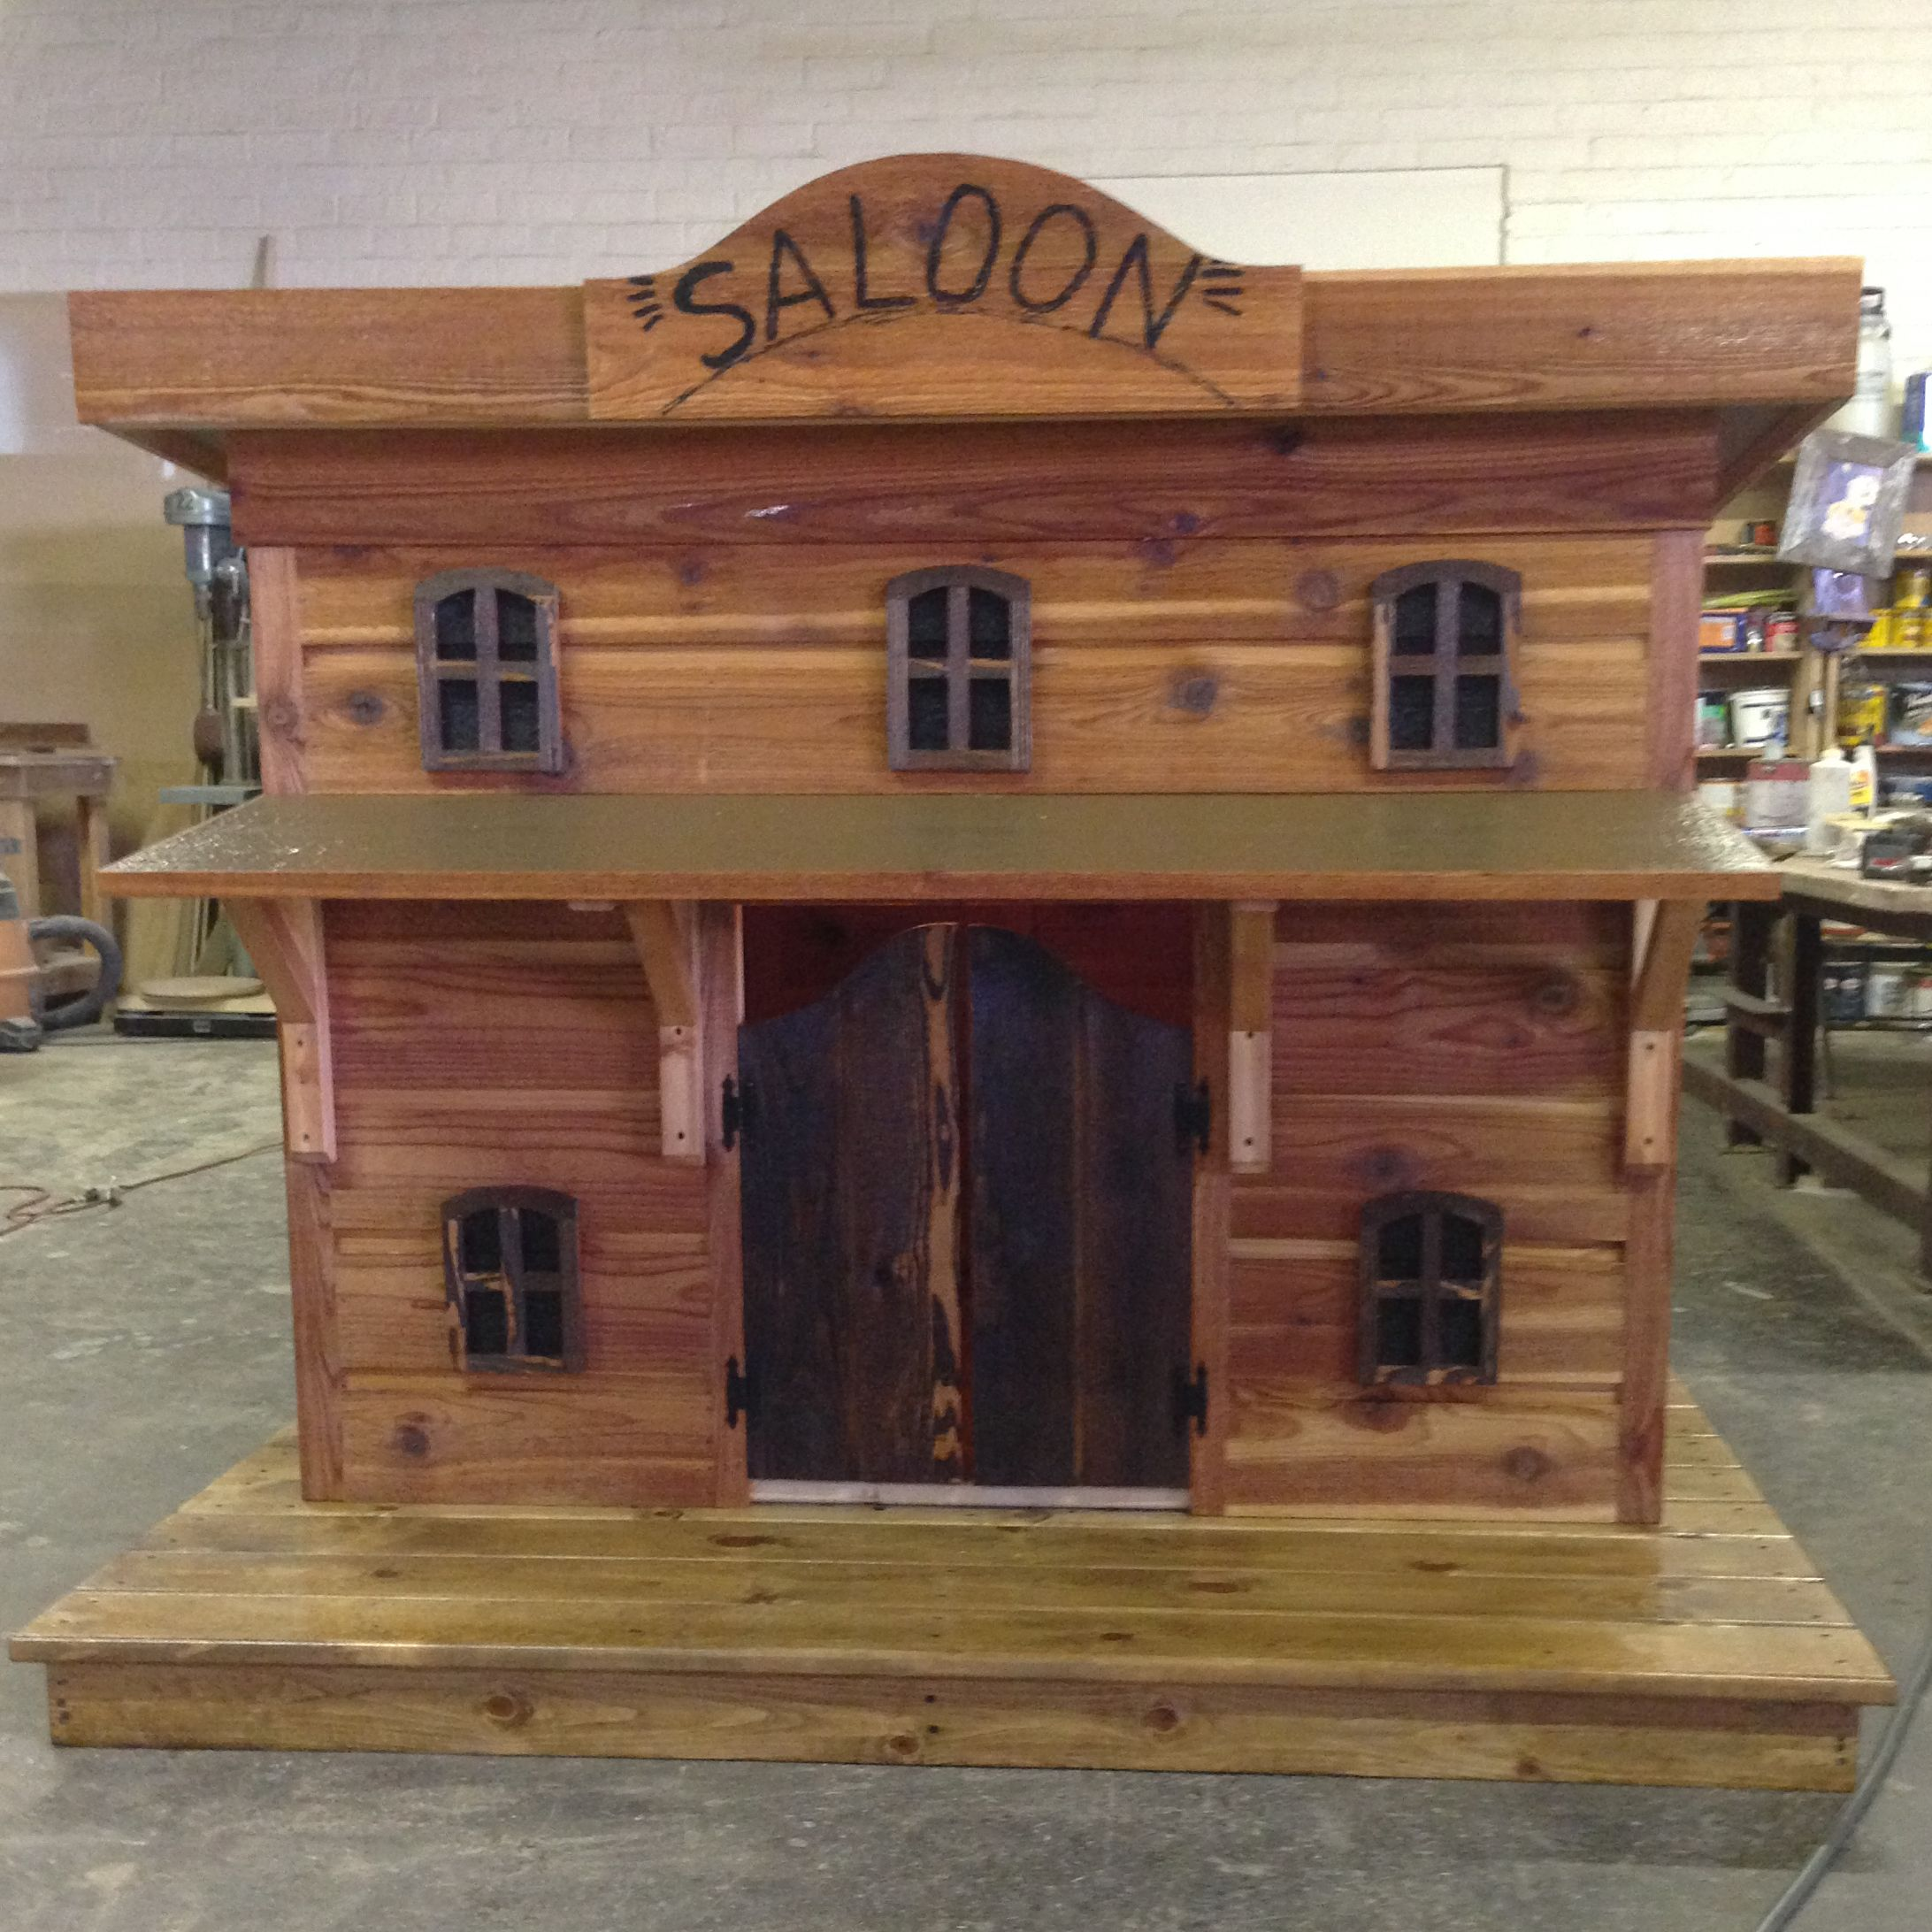 Custom Built Bow Wow Doghouses Let Your Dog Unwind In His Very